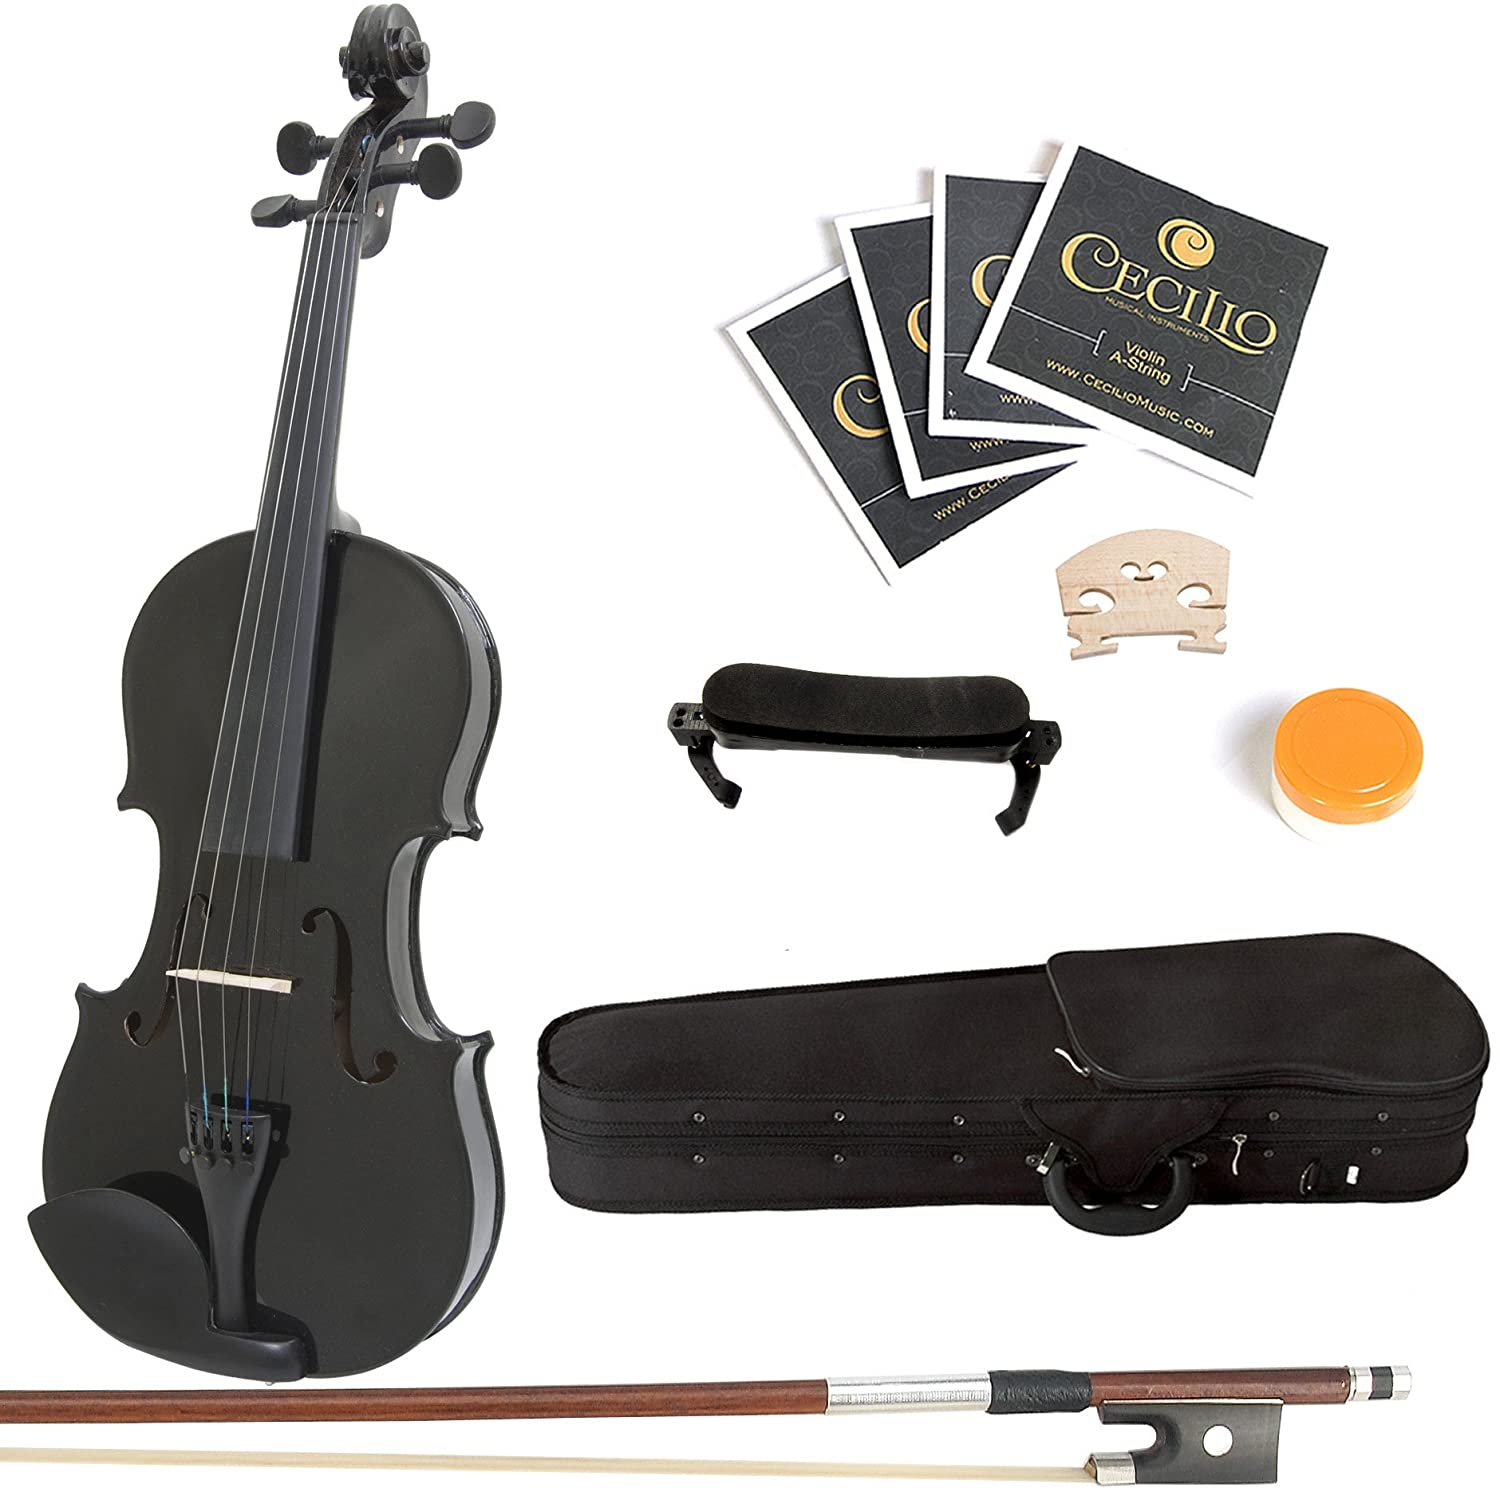 Mendini 1/2 MV-Black Solid Wood Violin with Hard Case, Shoulder Rest, Bow, Rosin and Extra Strings 1/2MV-Black